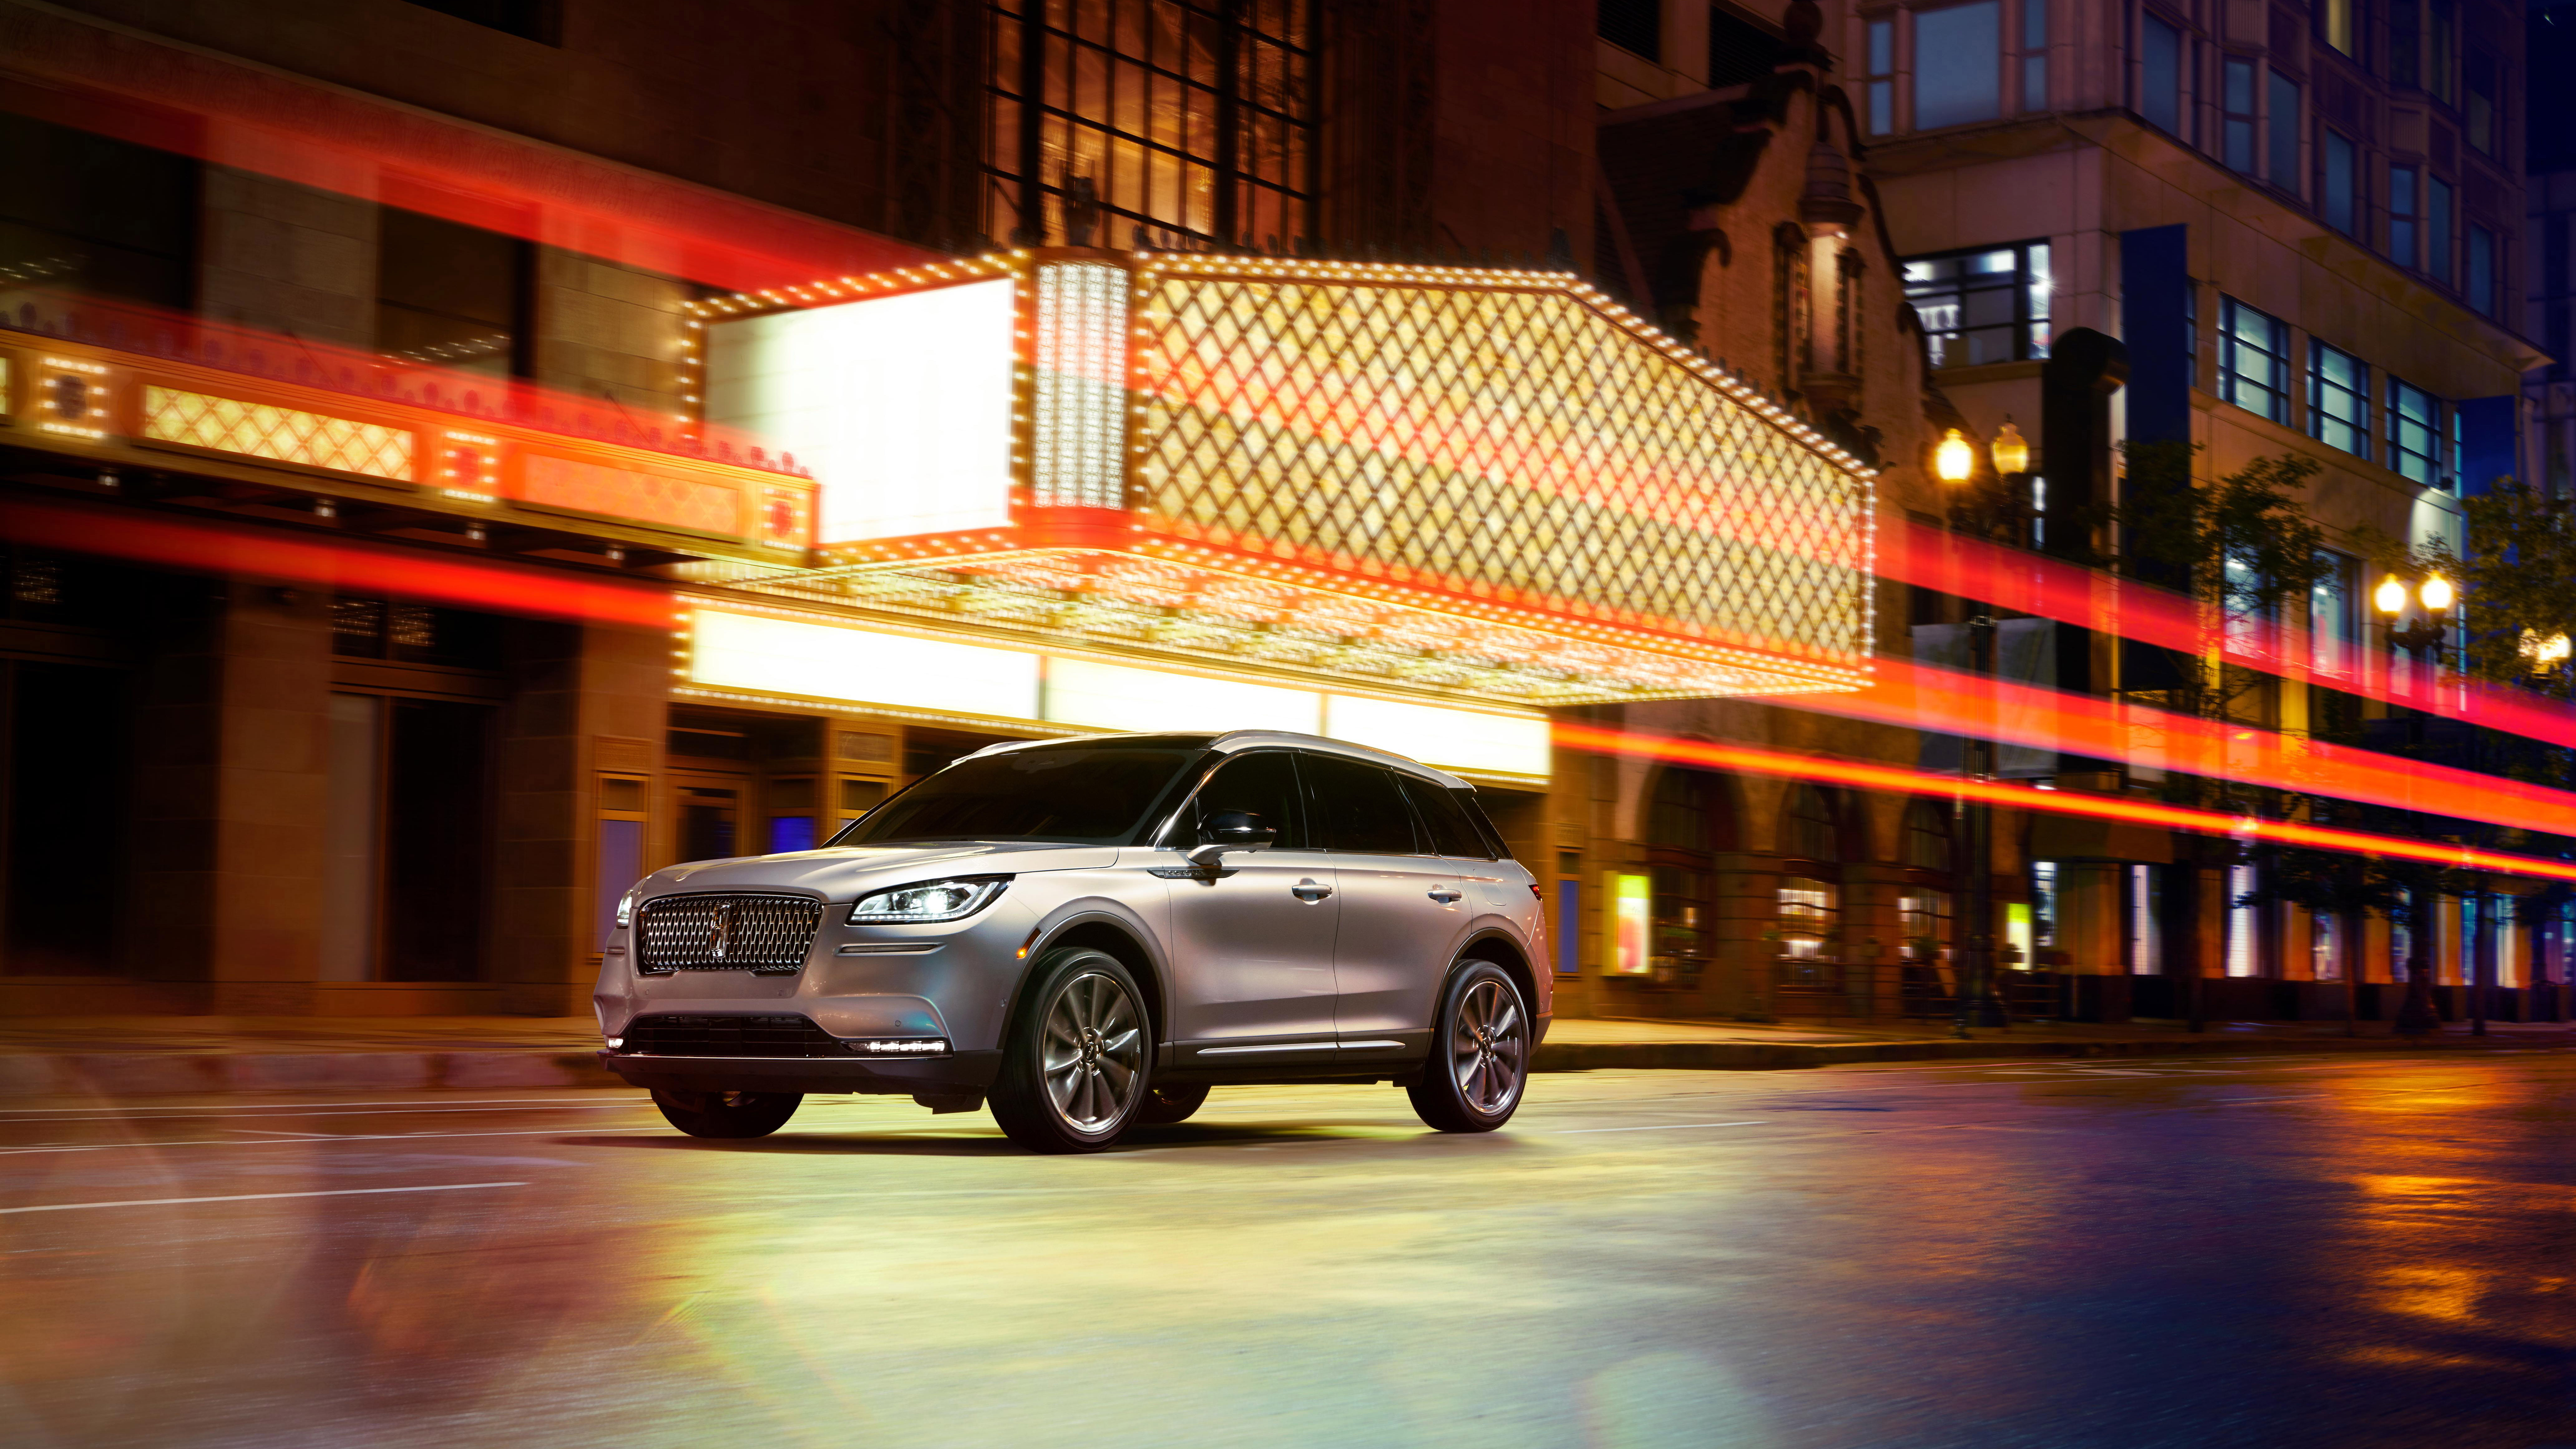 2020 Lincoln Corsair A Luxury Suv Fit For Family Road Trips